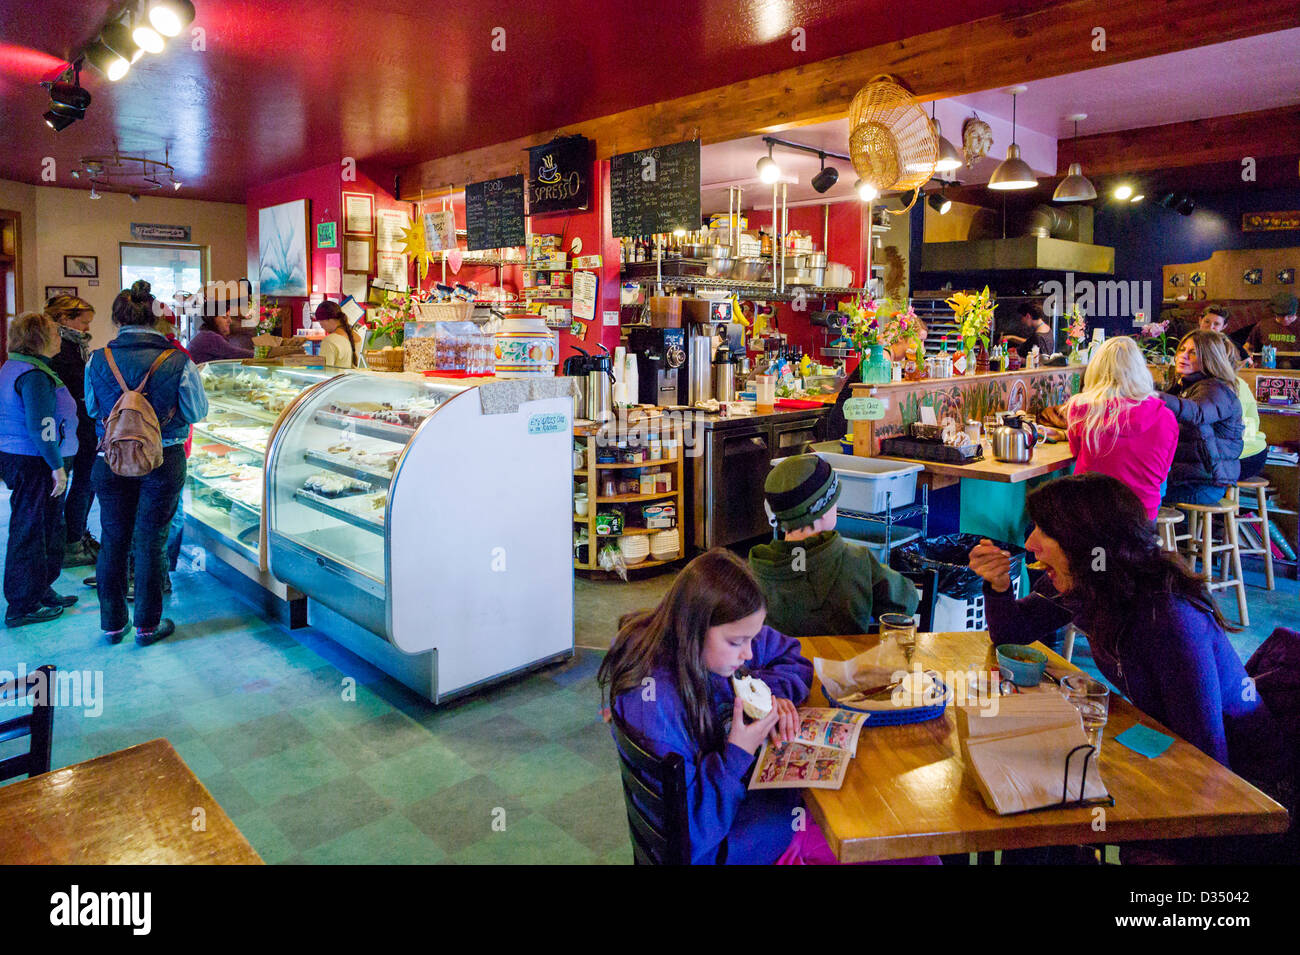 Interior view of customers at the Two Sisters Bakery   cafe  Homer     Interior view of customers at the Two Sisters Bakery   cafe  Homer  Alaska   USA